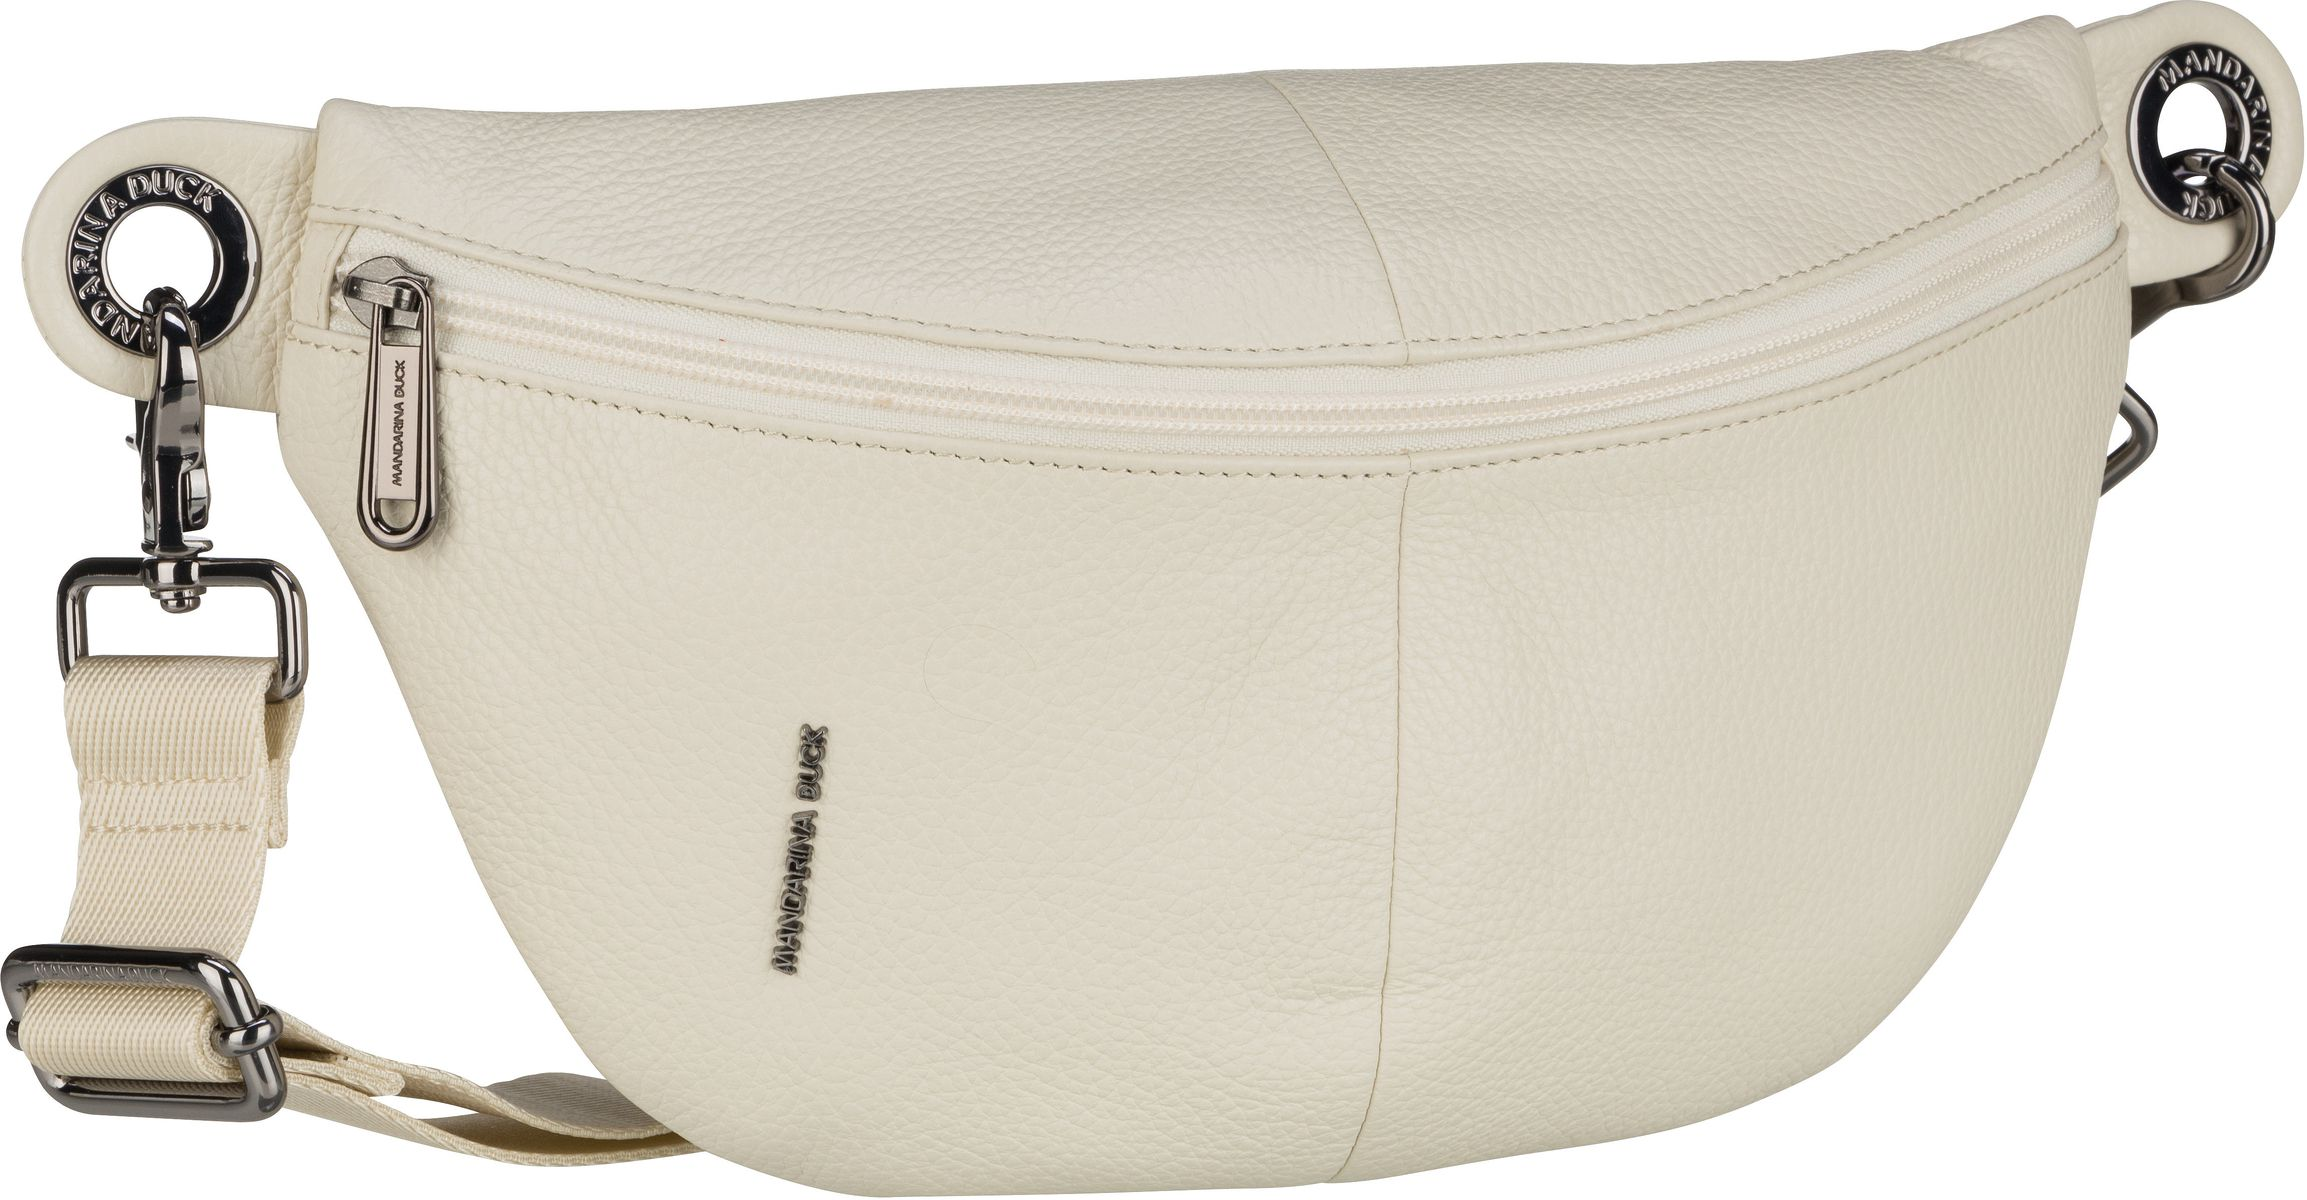 mandarina duck -  Gürteltasche Mellow Leather Bum Bag FZT73 Off White